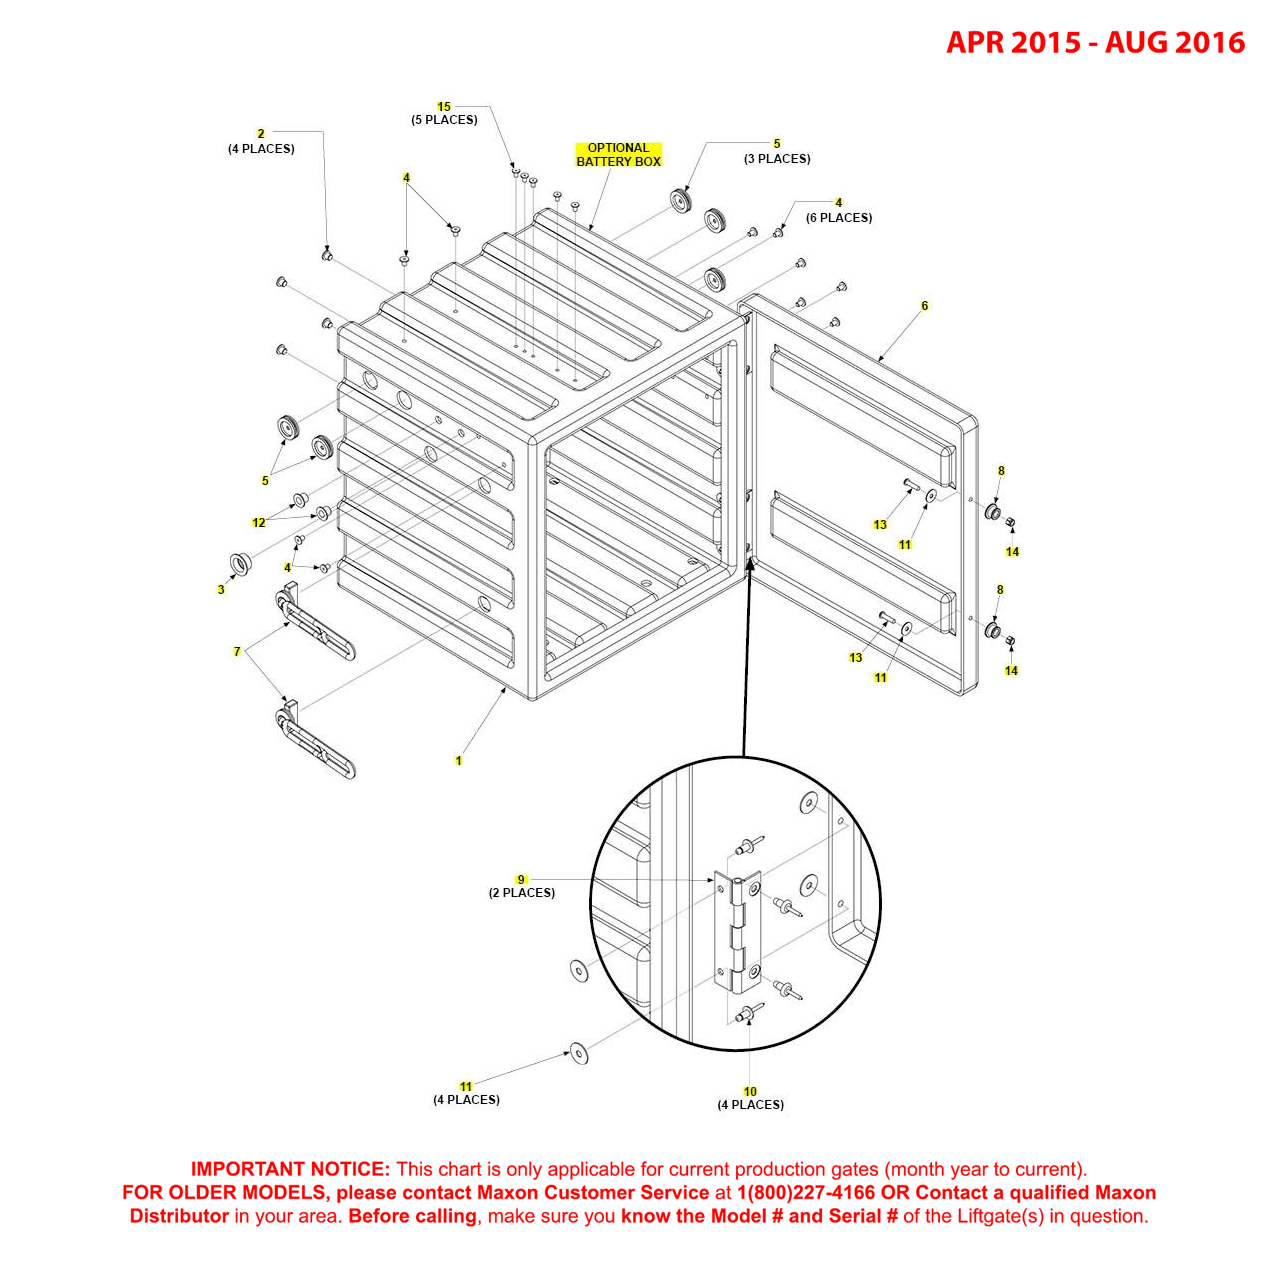 GPT (Apr 2015 - Aug 2016) Optional Battery Box Diagram